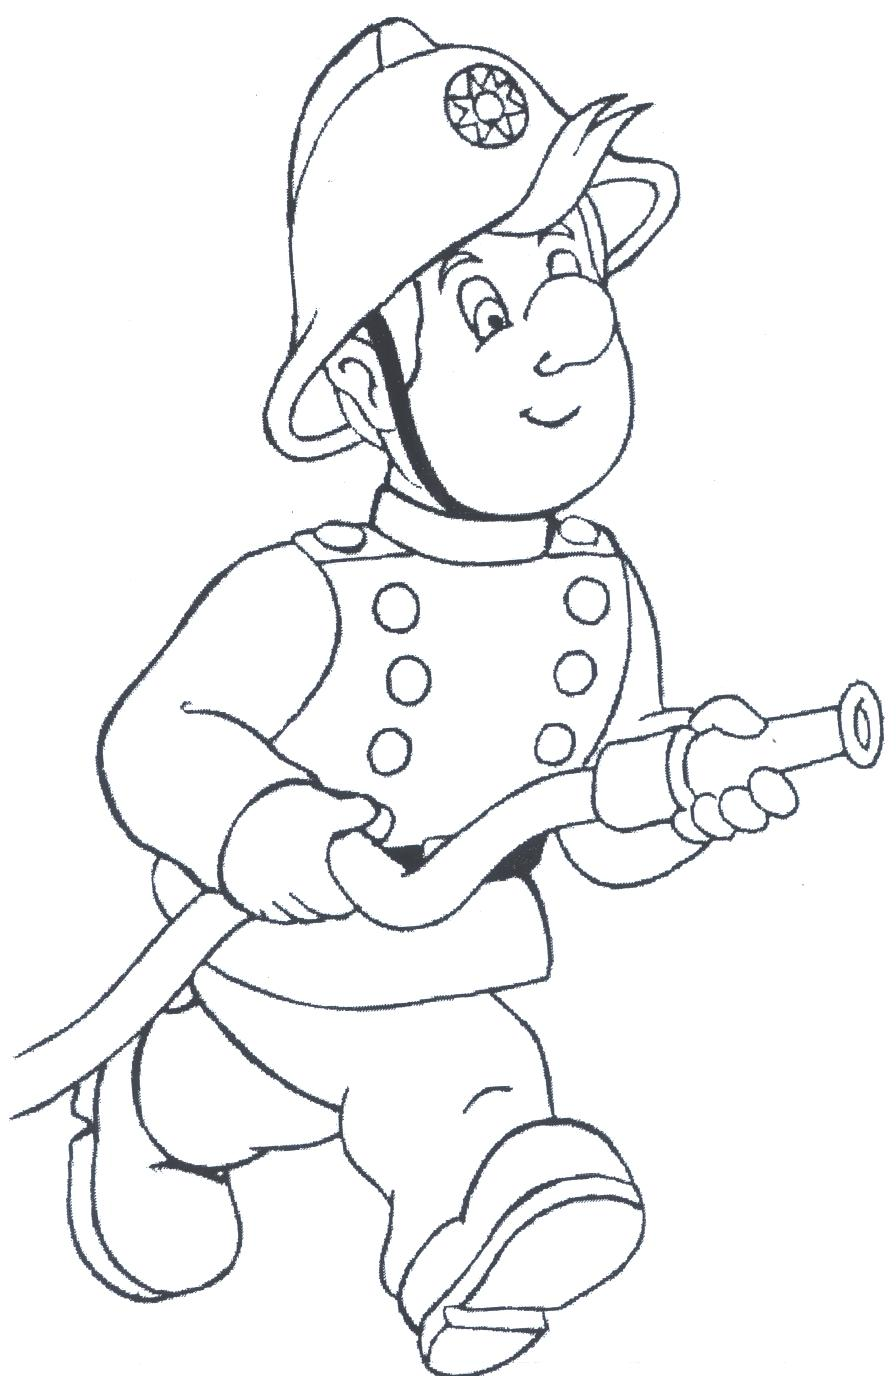 free coloring pages of firefighter Firefighter Coloring Pages for Preschool  Coloring Firefighter